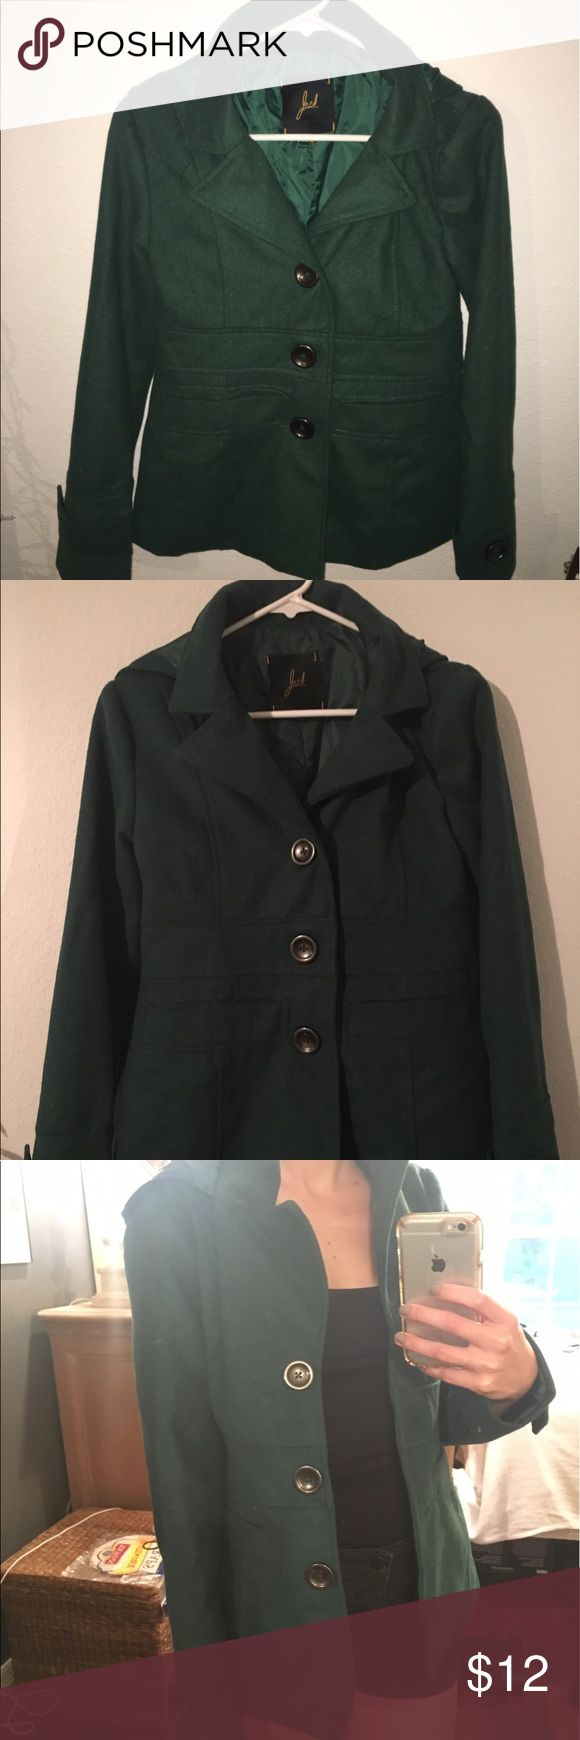 Hunter green winter coat Winter coat with hood (shown in last picture) Jack Spade Jackets & Coats Trench Coats